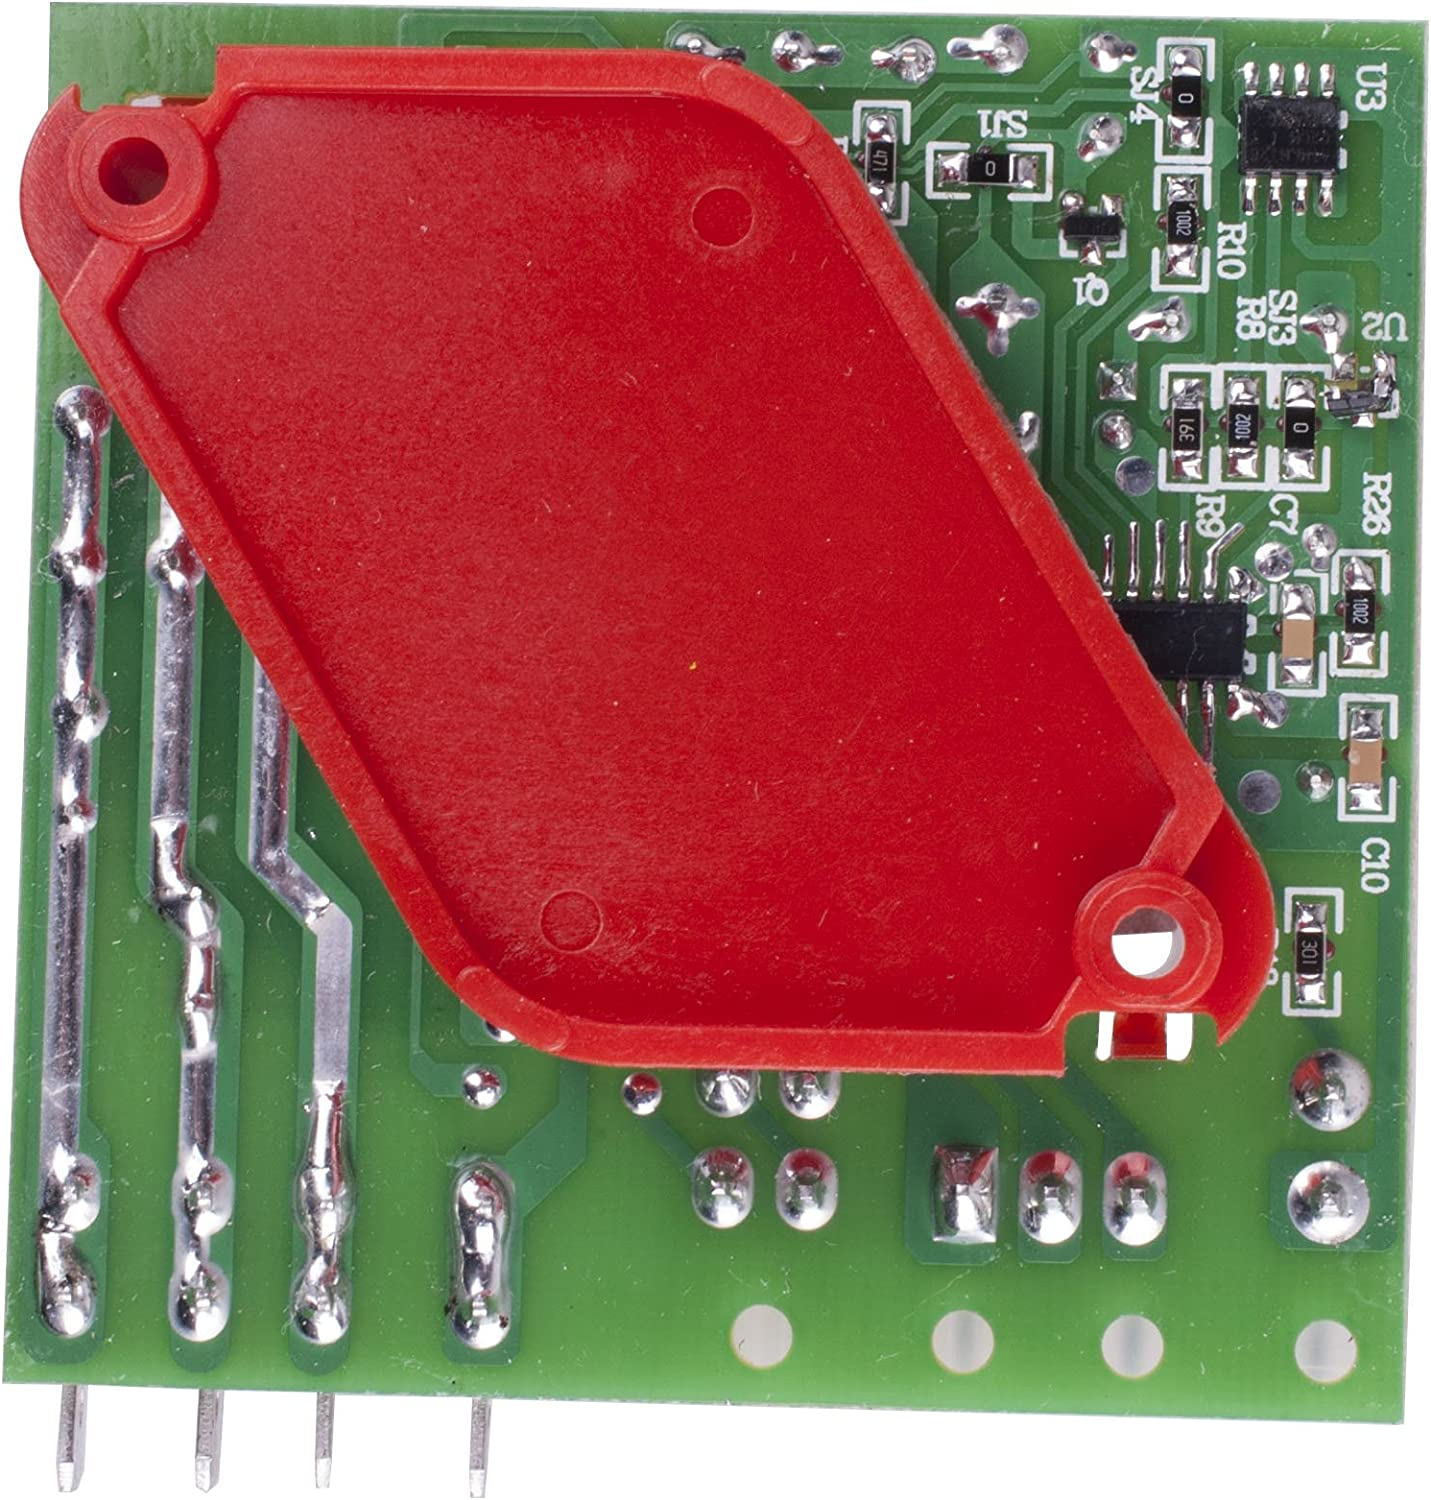 Adaptive Defrost Control Board Replace for W10366605 Compatible with Whirlpool Referigerator Replaces 2213456 2213457 2213475 W10135899